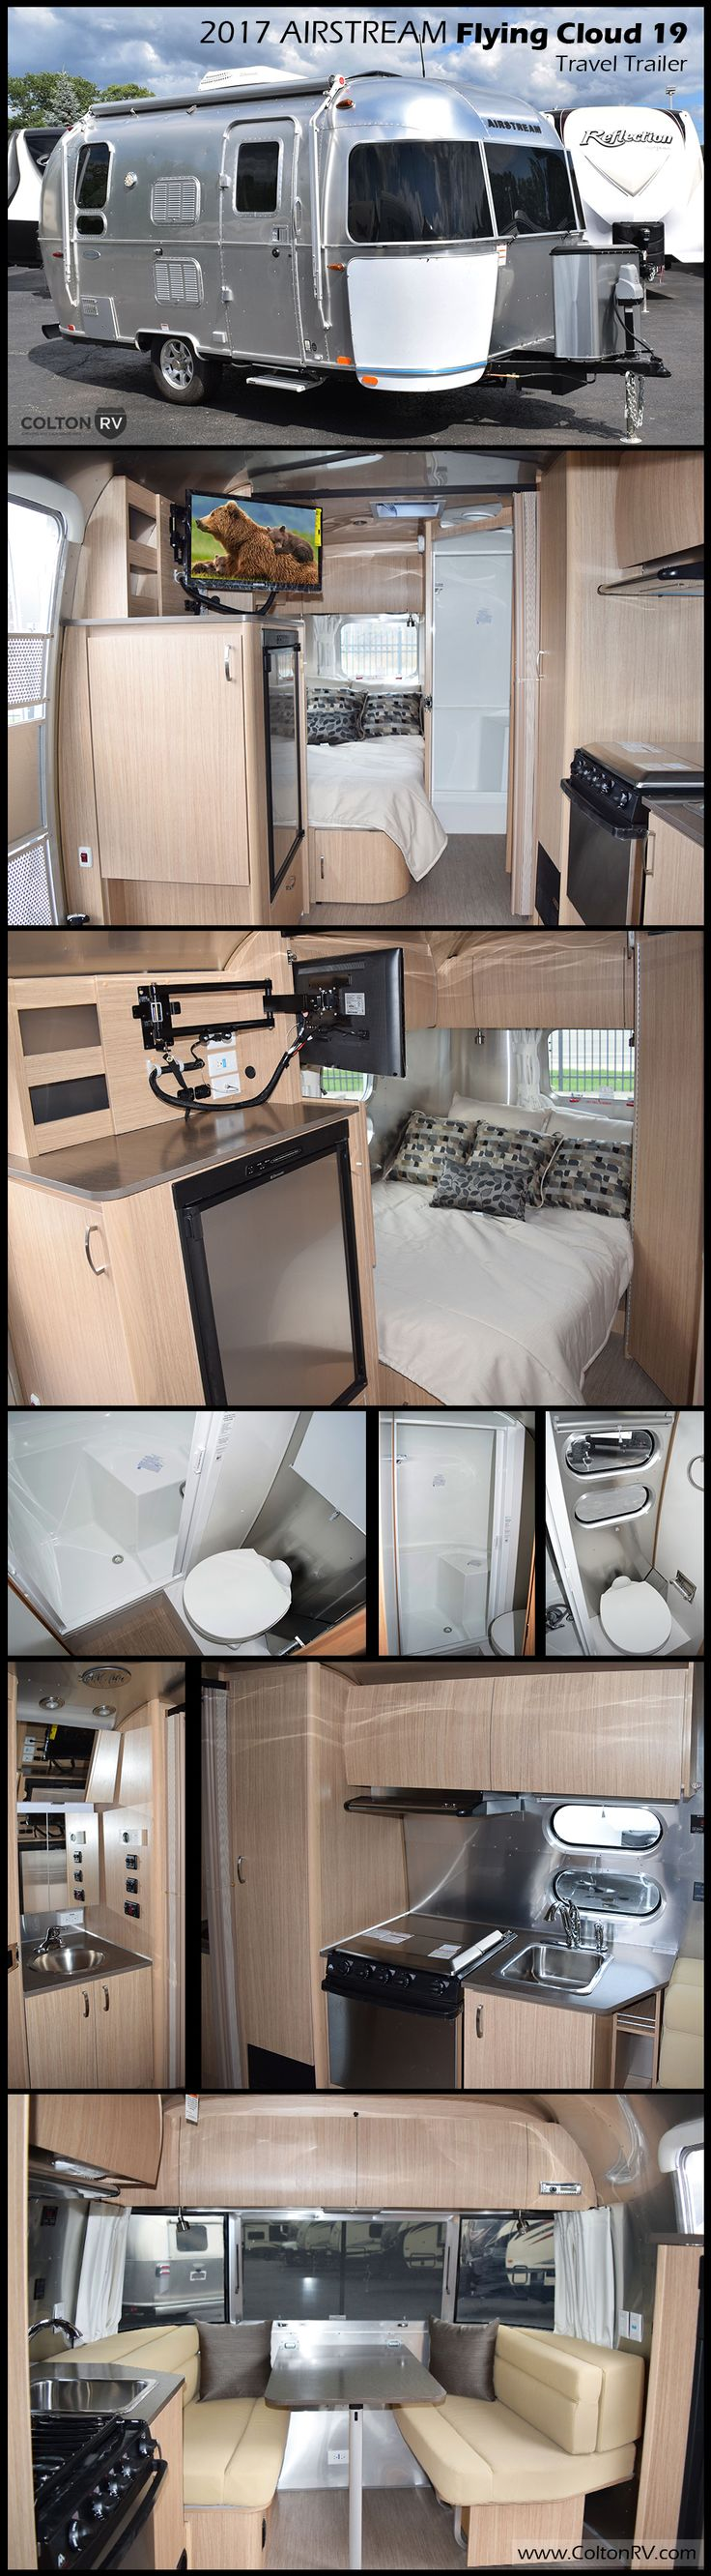 """Built to last, this 2017 FLYING CLOUD 19 travel trailer by AIRSTREAM moves """"like a stream of air""""… cutting down on drag and resulting in better gas mileage plus they have a low center of gravity which means more stability when it comes to turns and gusts of wind. You will enjoy the view from the large panoramic window up front!"""